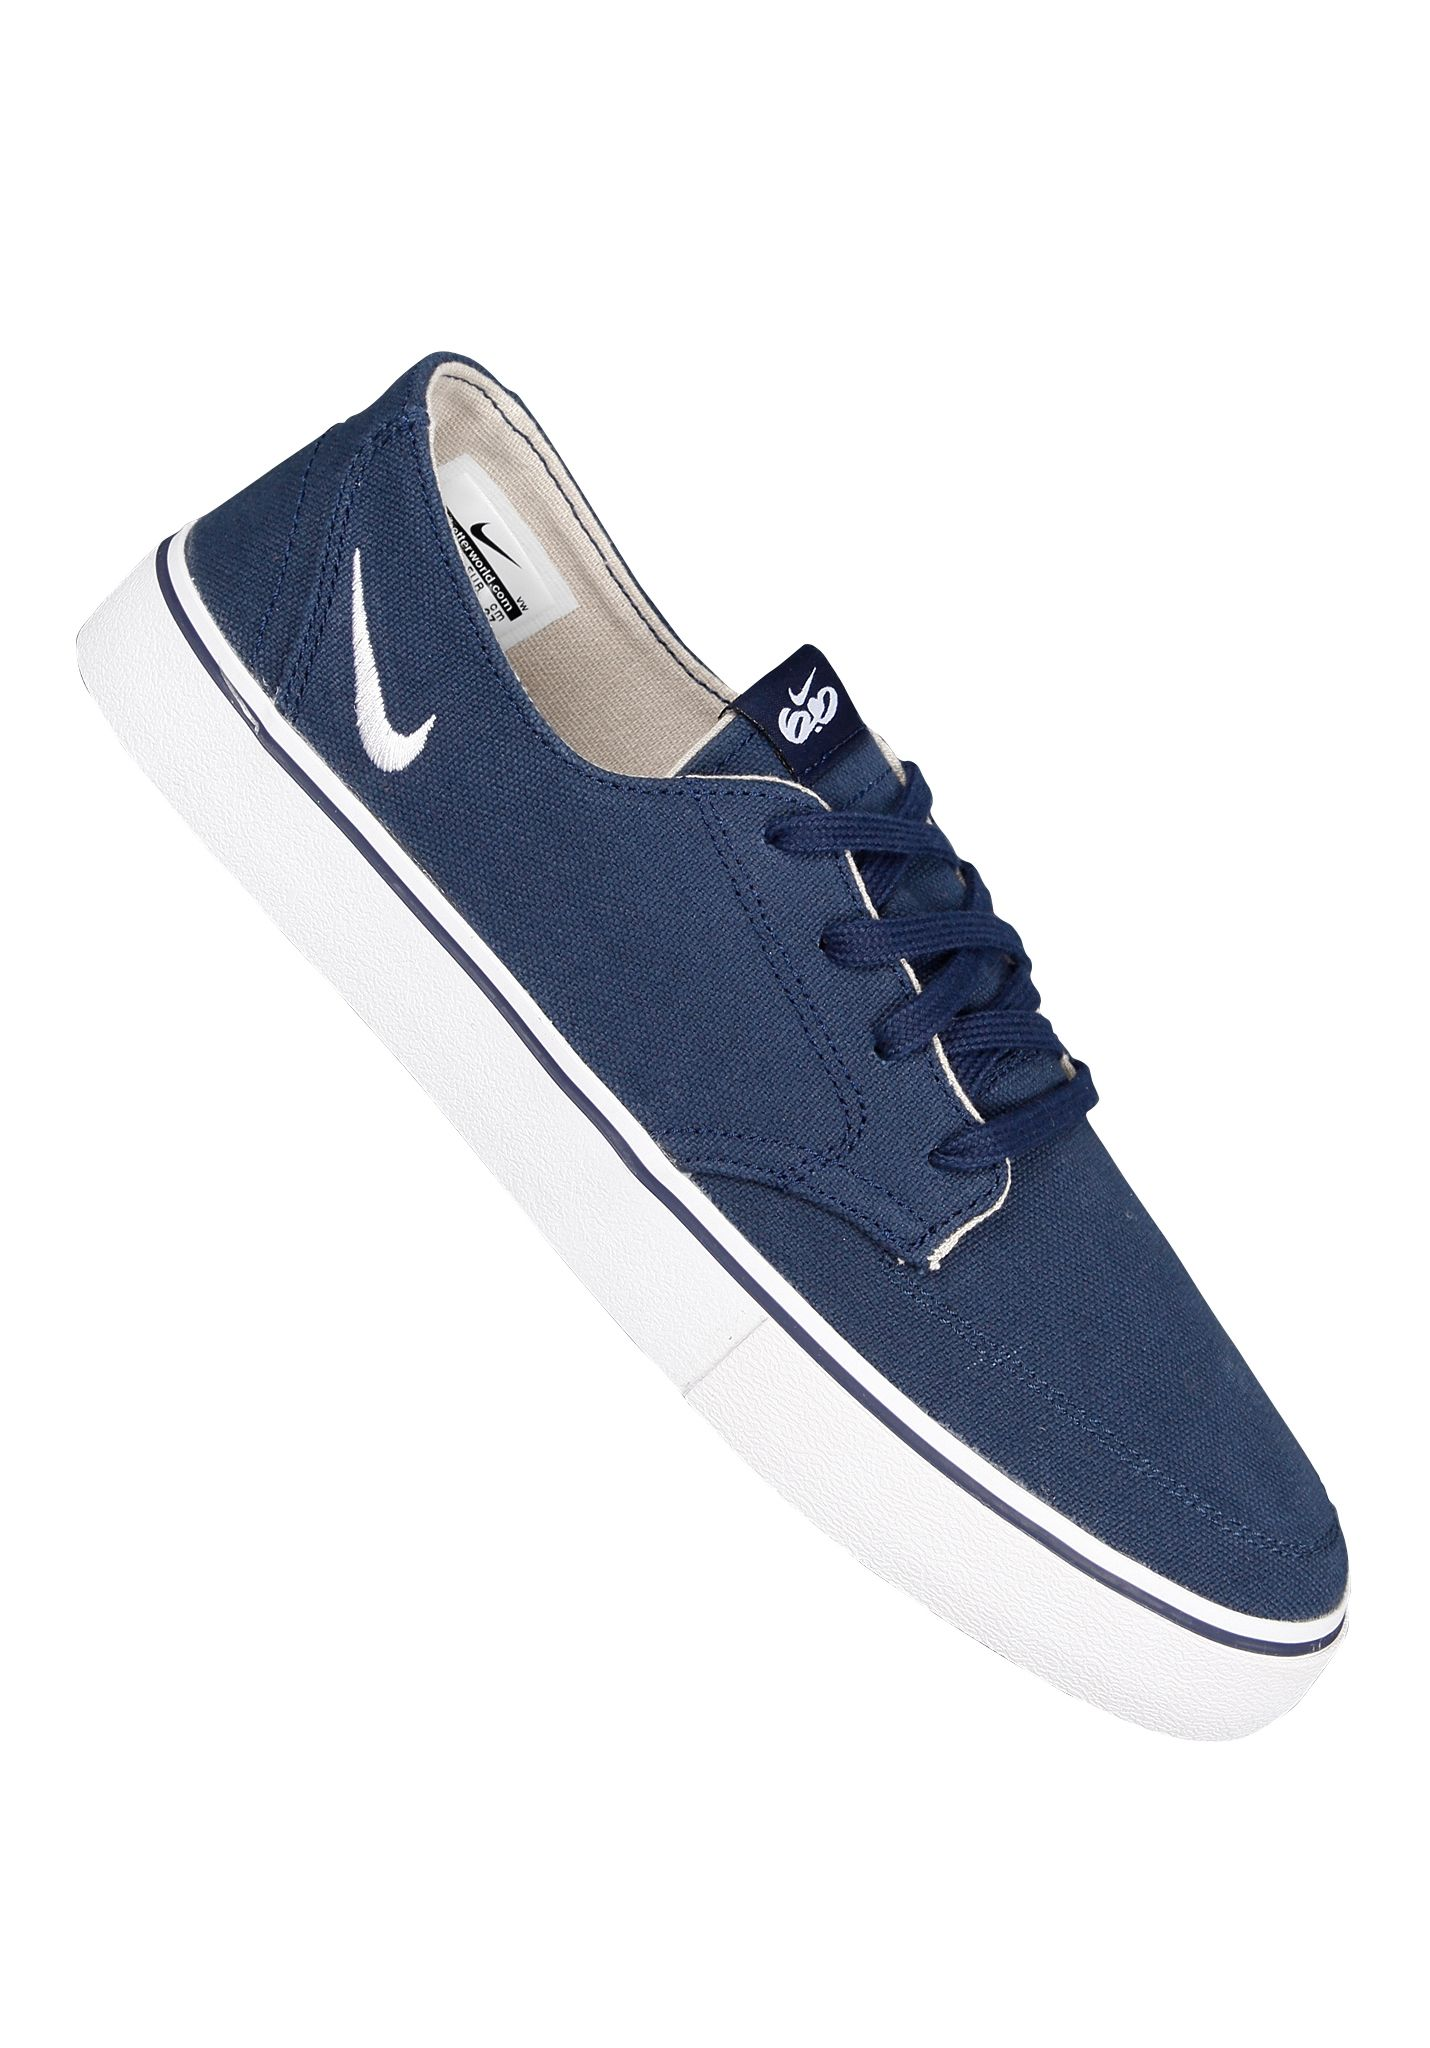 huge discount 07bad a49bc NIKE SB Braata LR Canvas - Sneakers for Men - Blue - Planet Sports